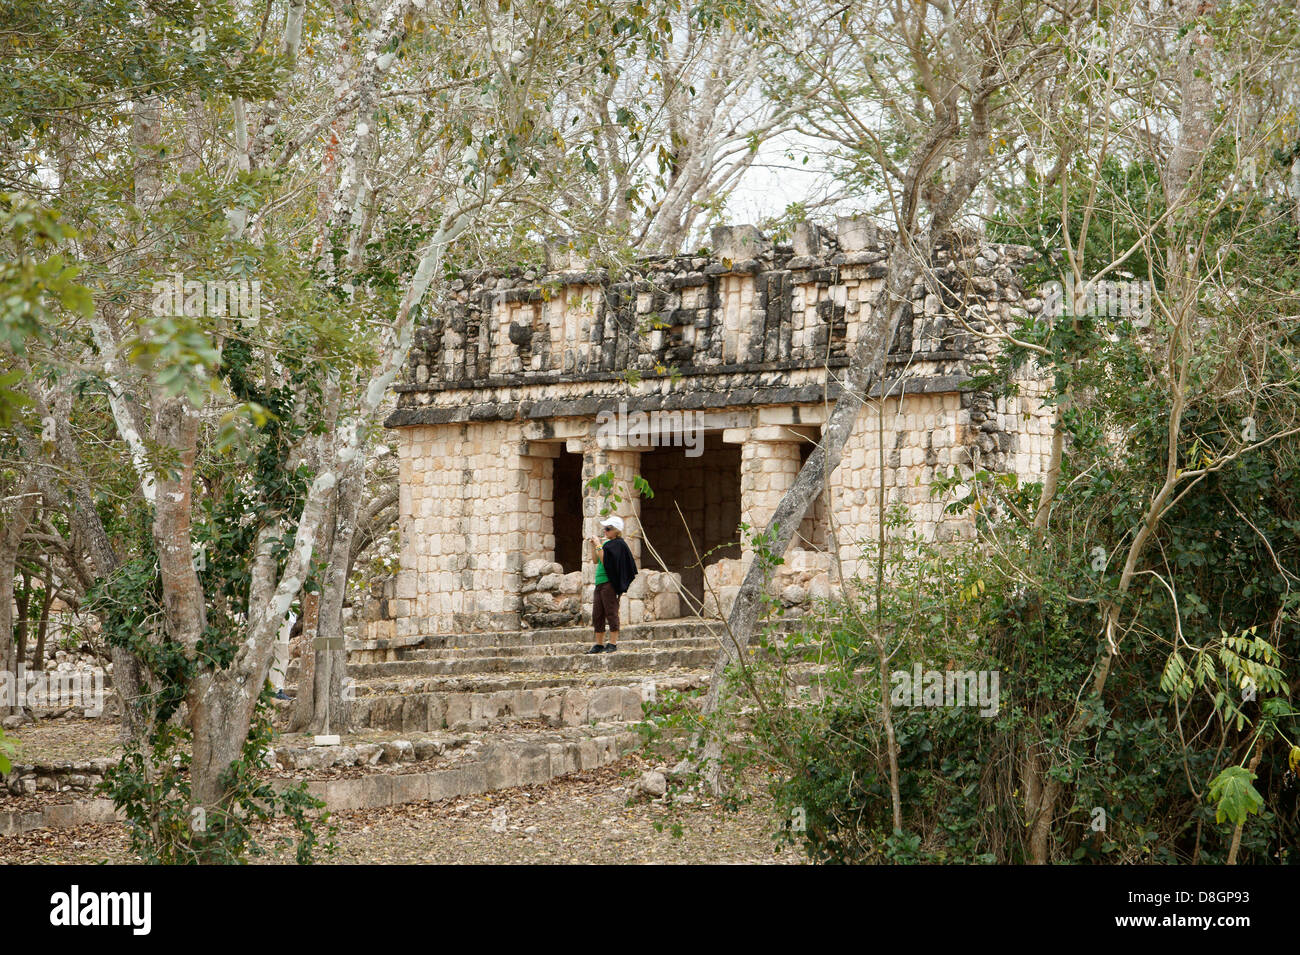 Female tourist taking a photo in front of a small Mayan temple shrouded by jungle, Uxmal, Yucatan, Mexico Stock Photo